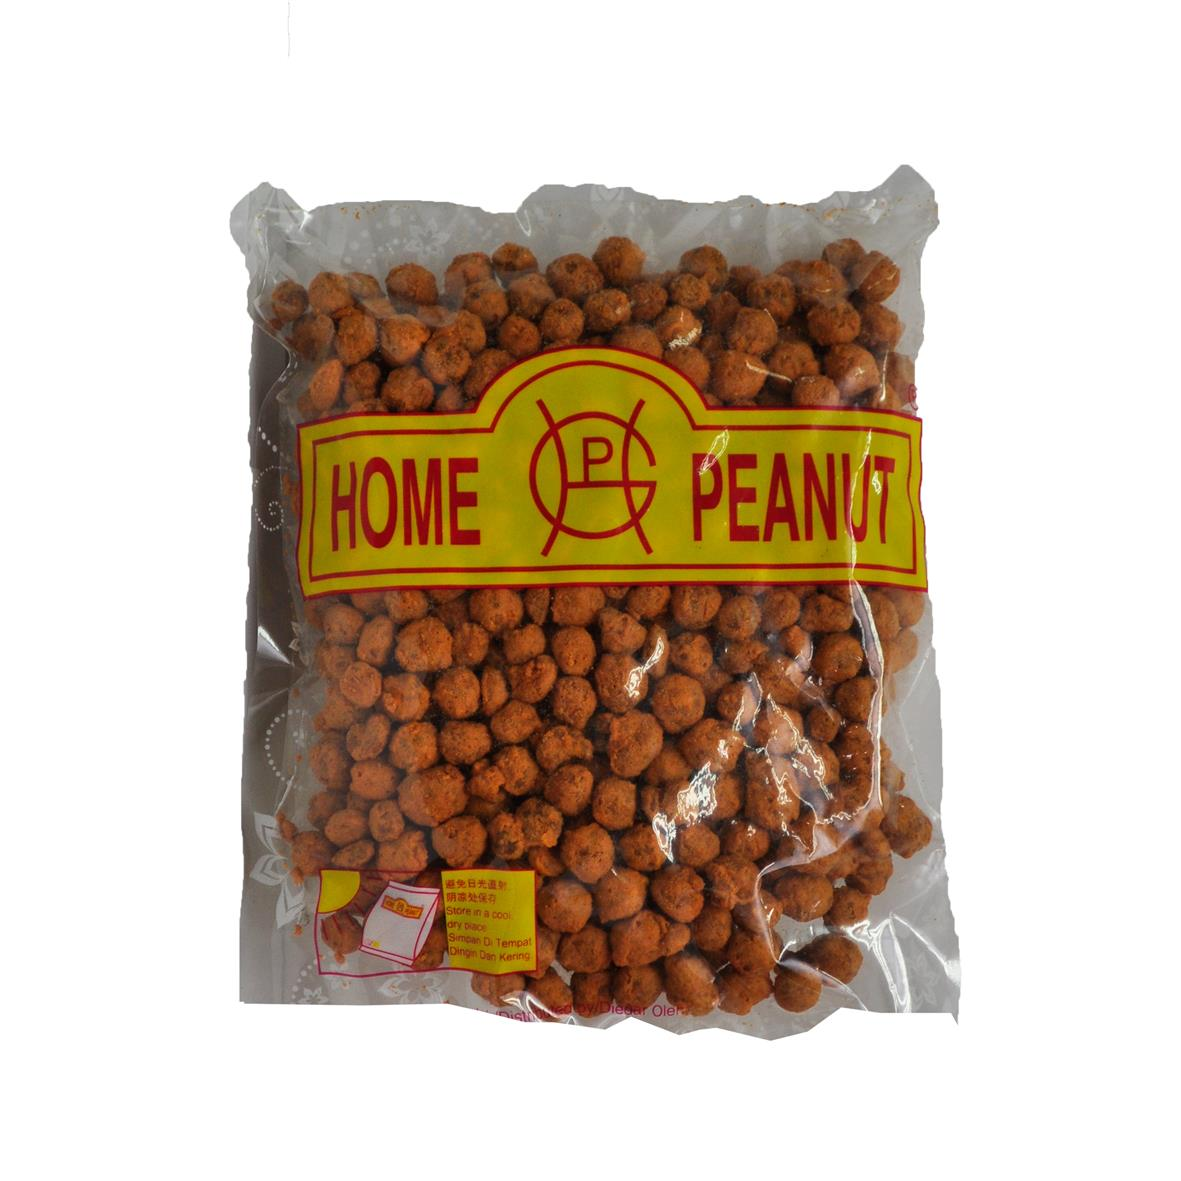 Home Peanut Garden Chili Chick Peas 350g